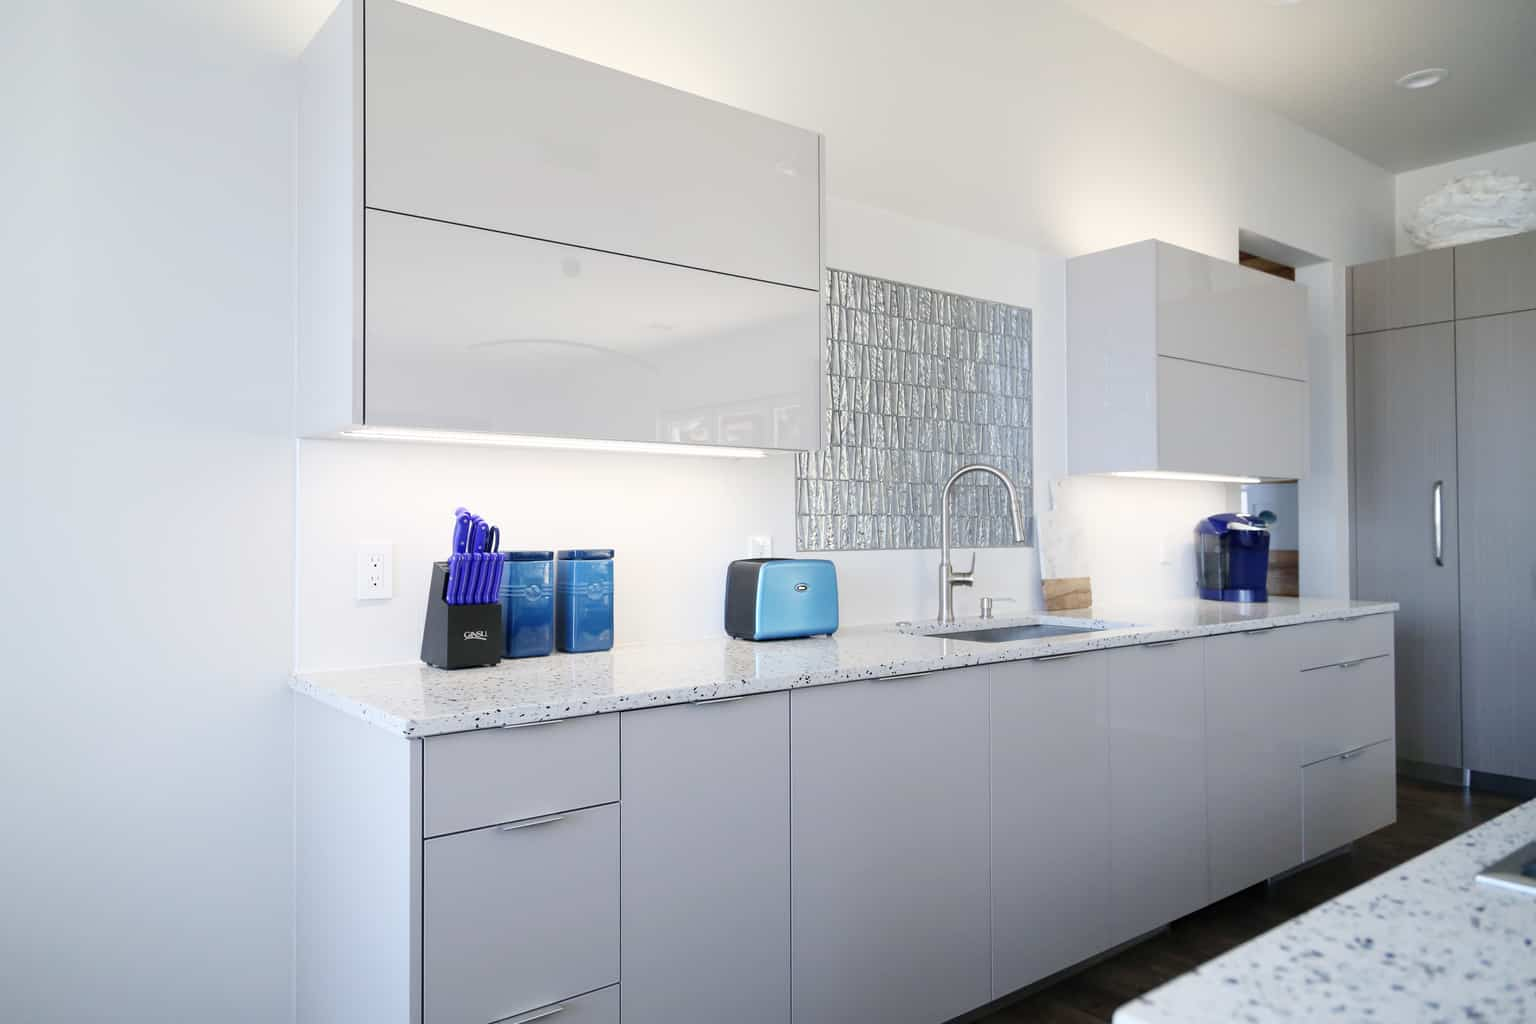 cabinet kitchen size light lighting cabinets lights full under of countertops